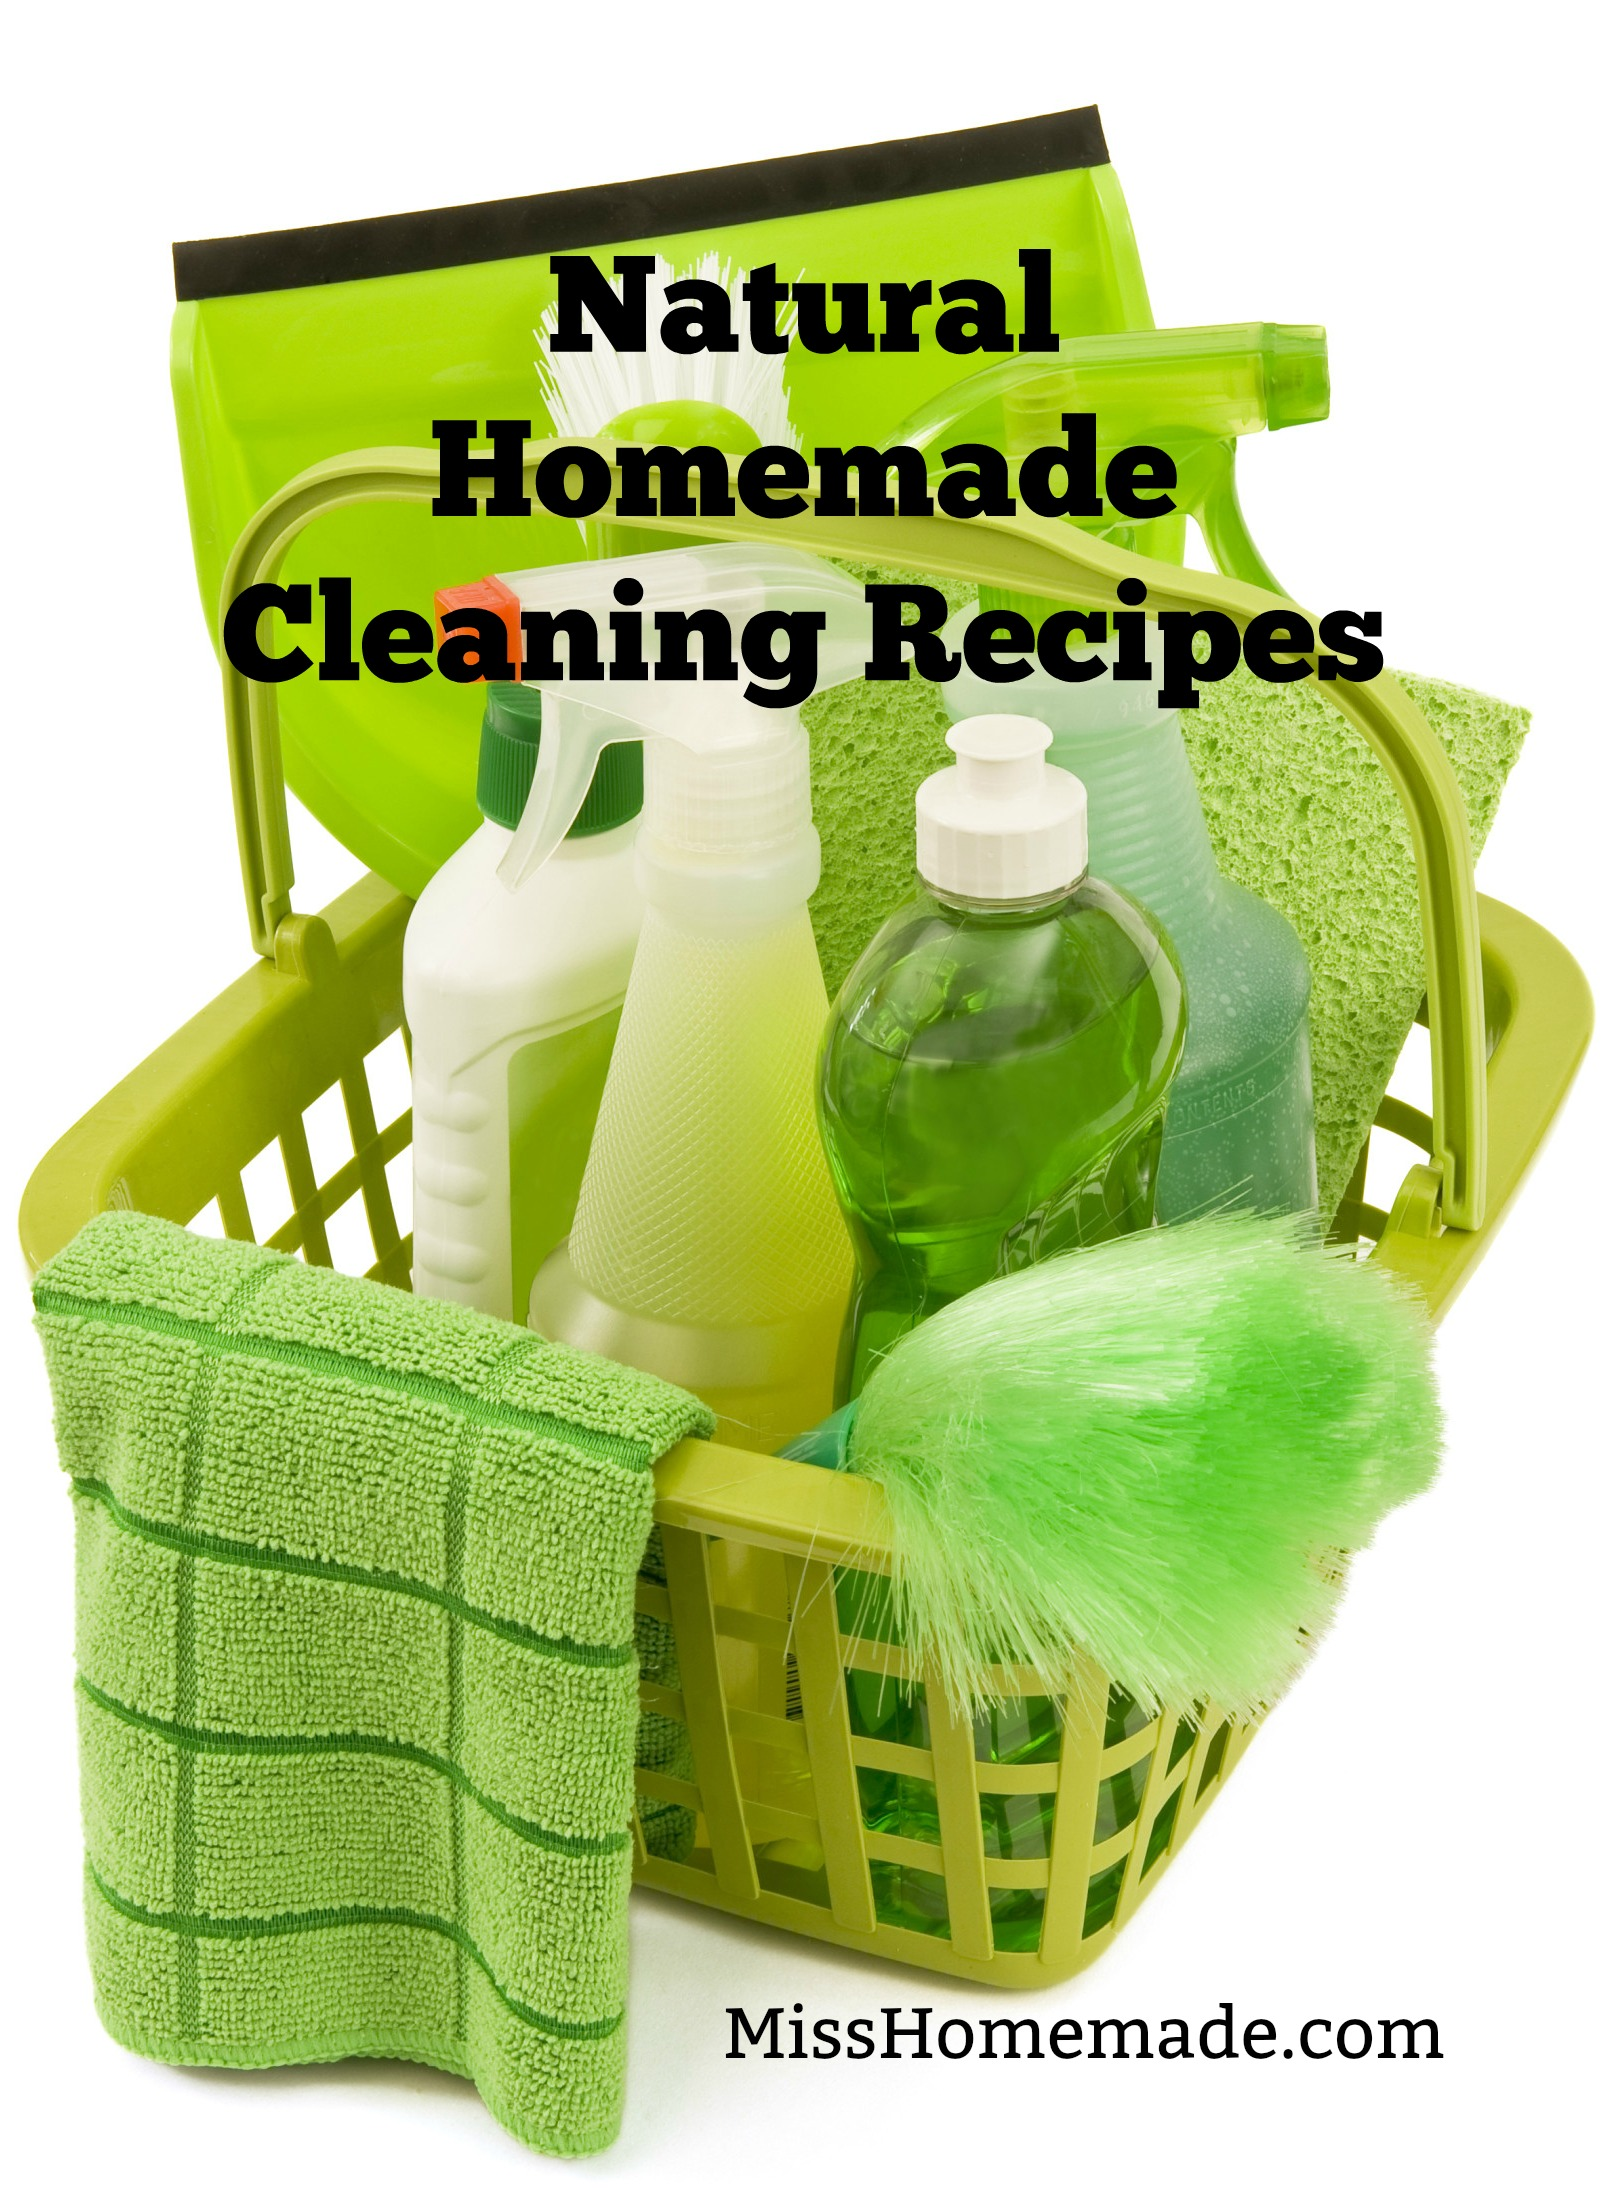 Natural Homemade Cleaning Products #misshomemade | Thousands of recipes at MissHomemade.com